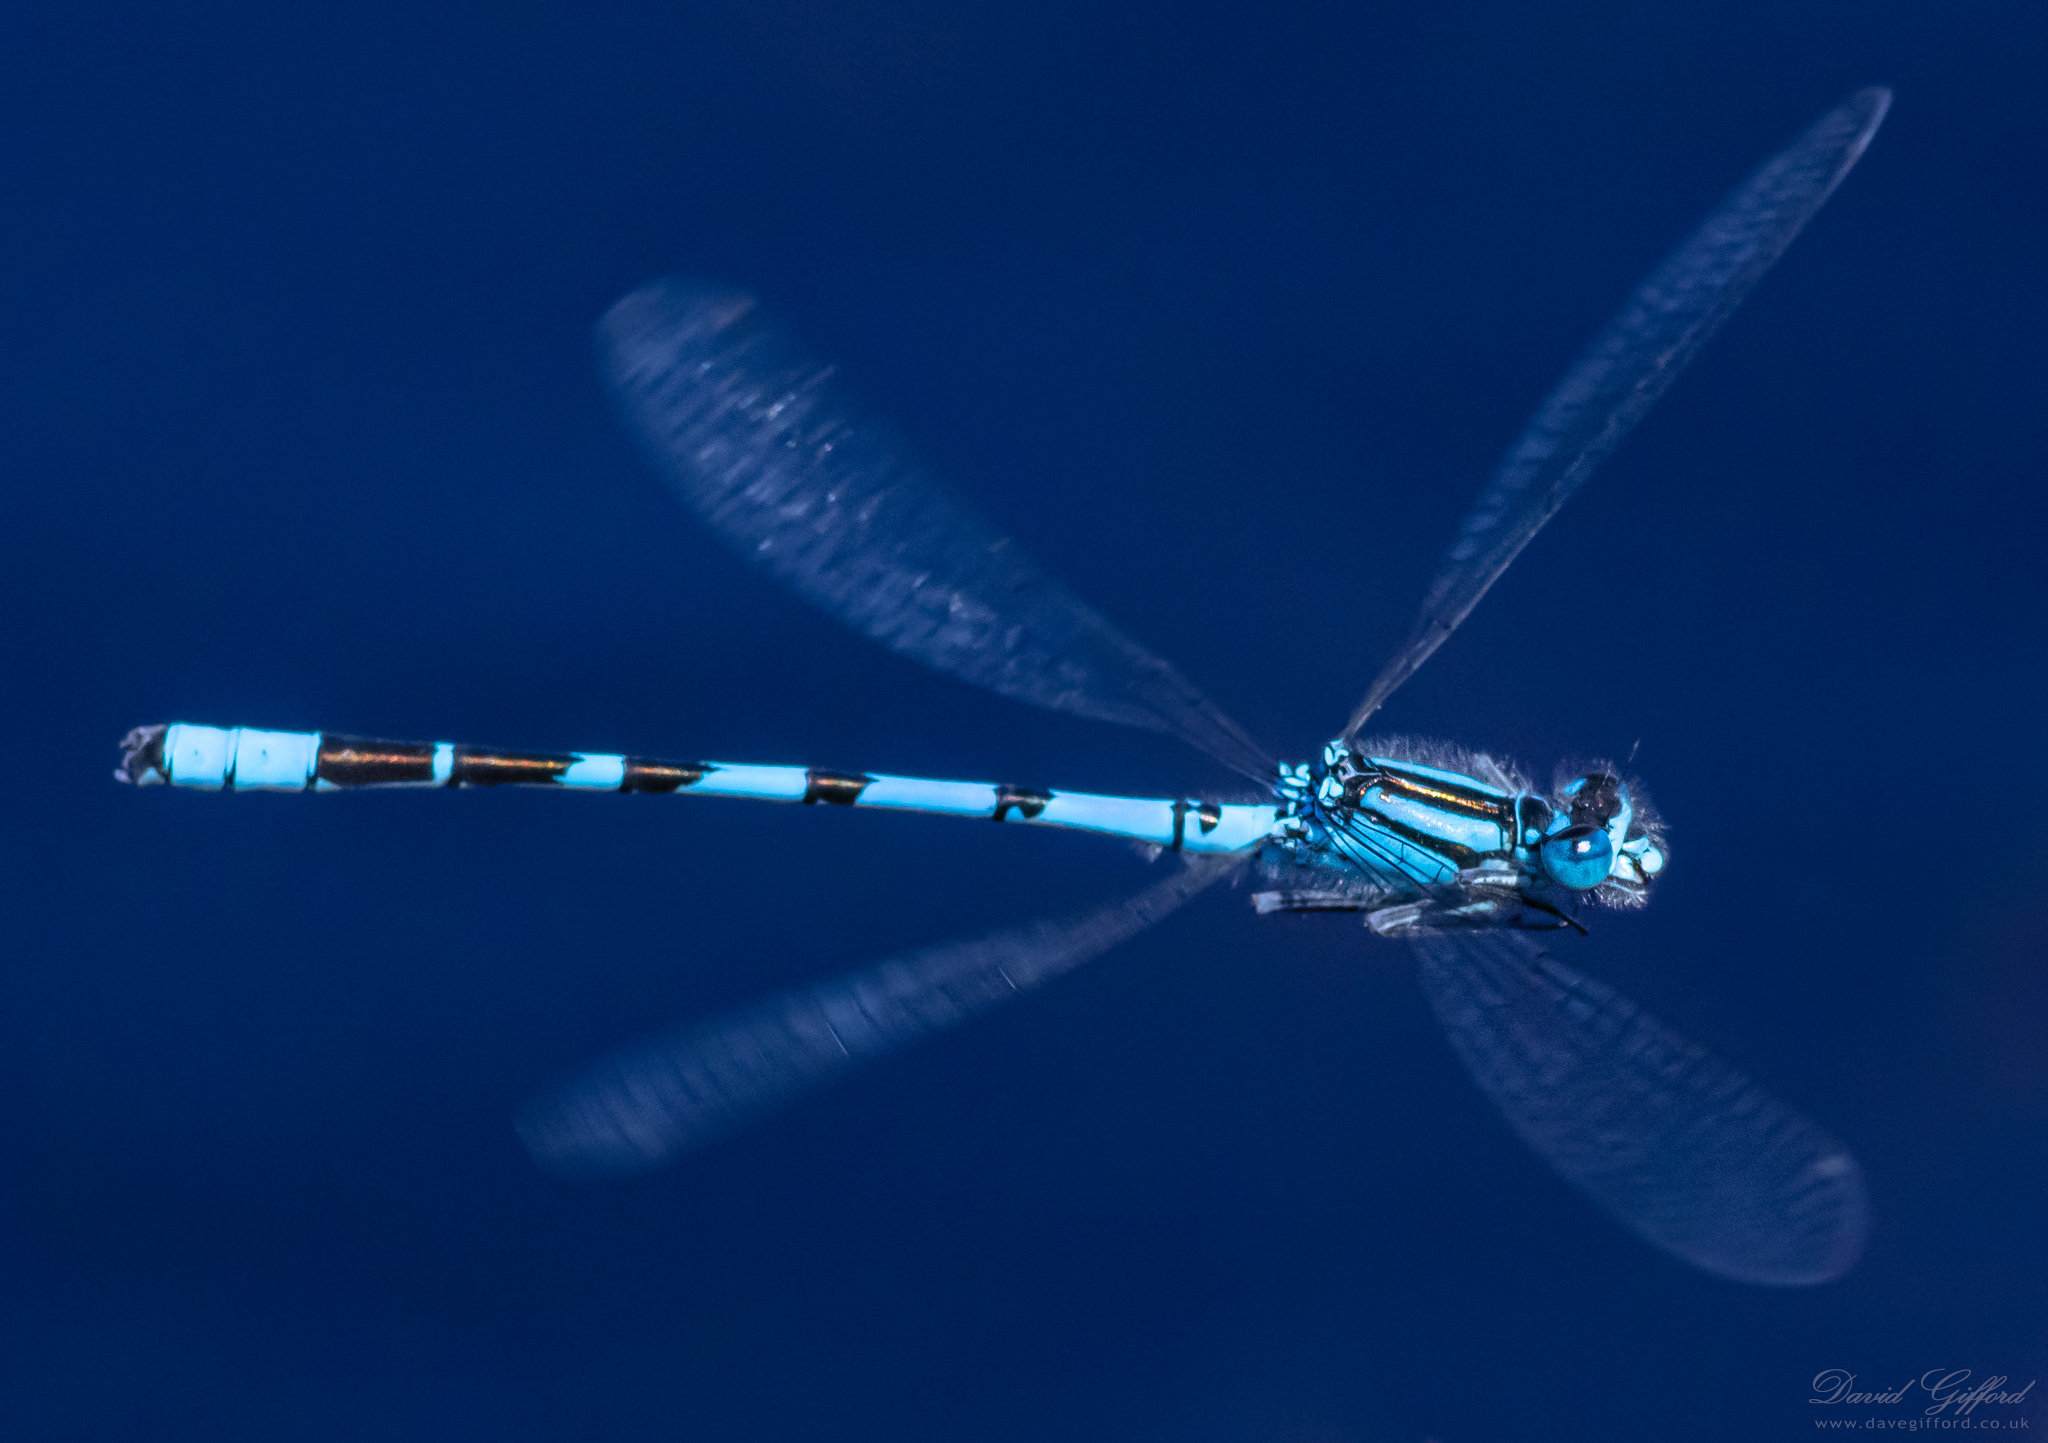 Shetland Damselfly in Flight